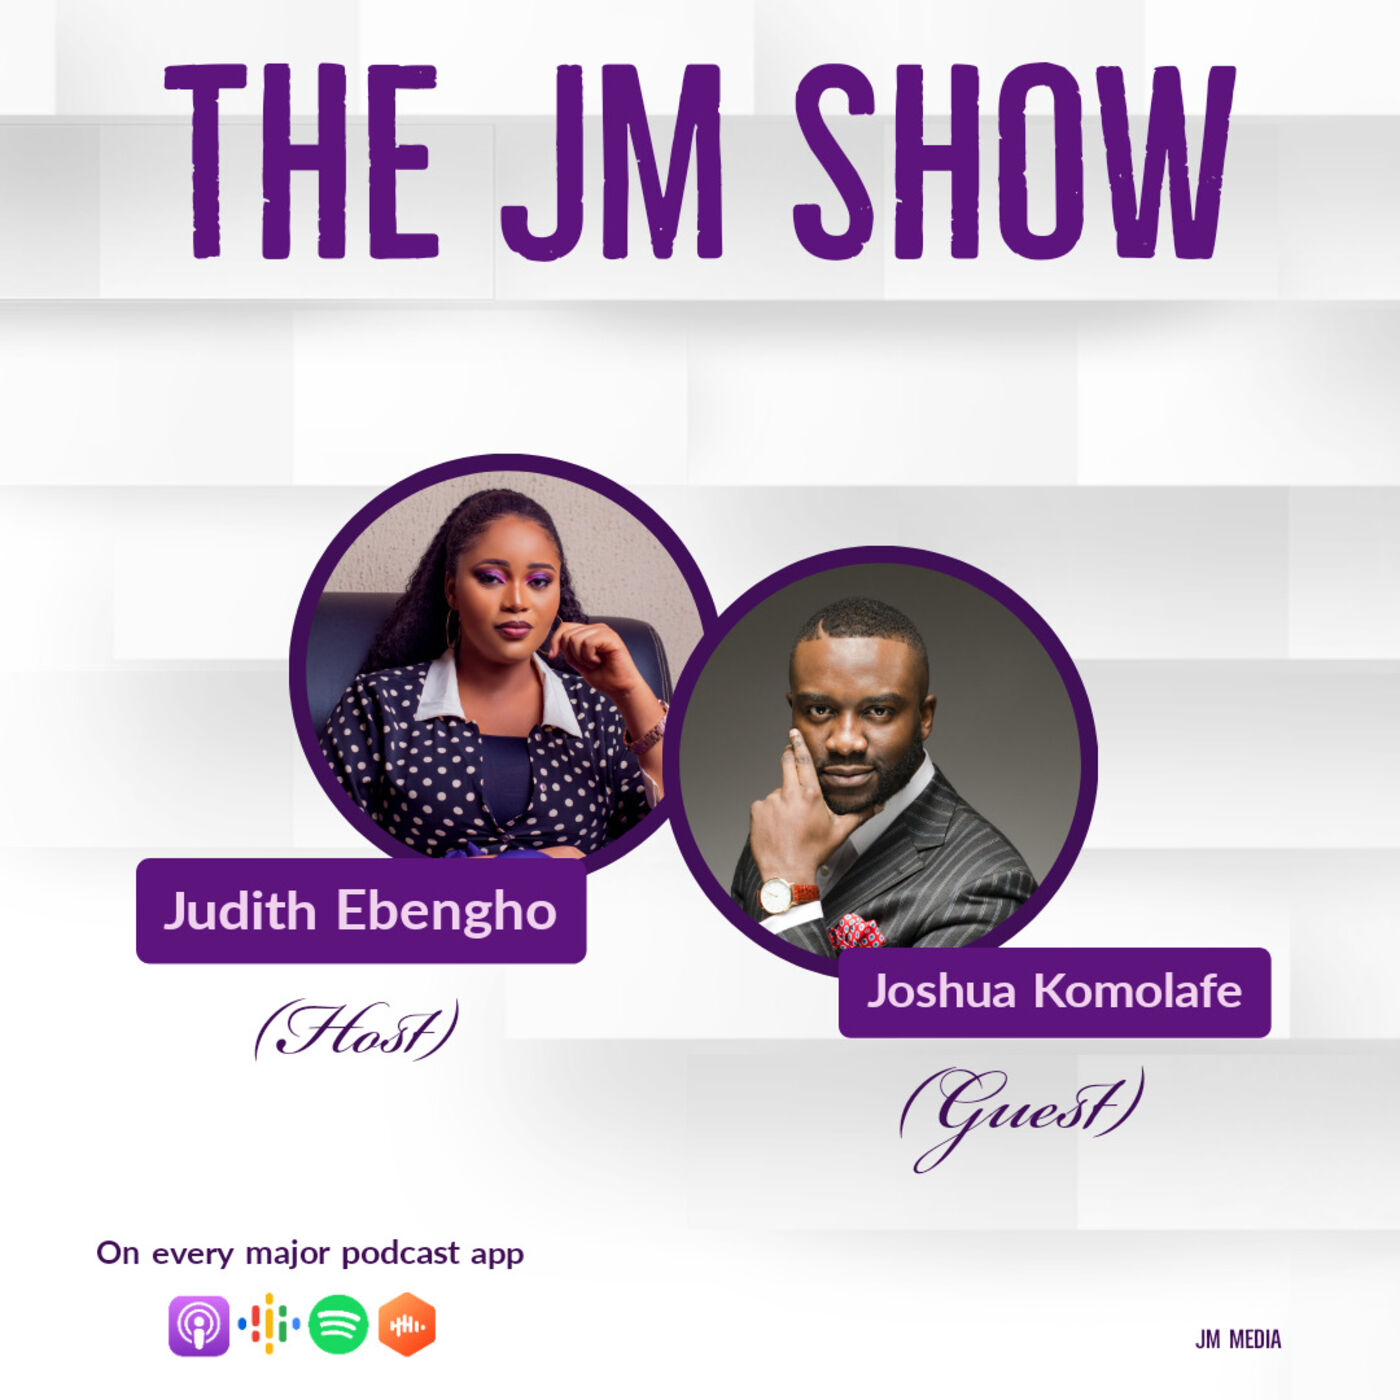 The JM show on Jamit